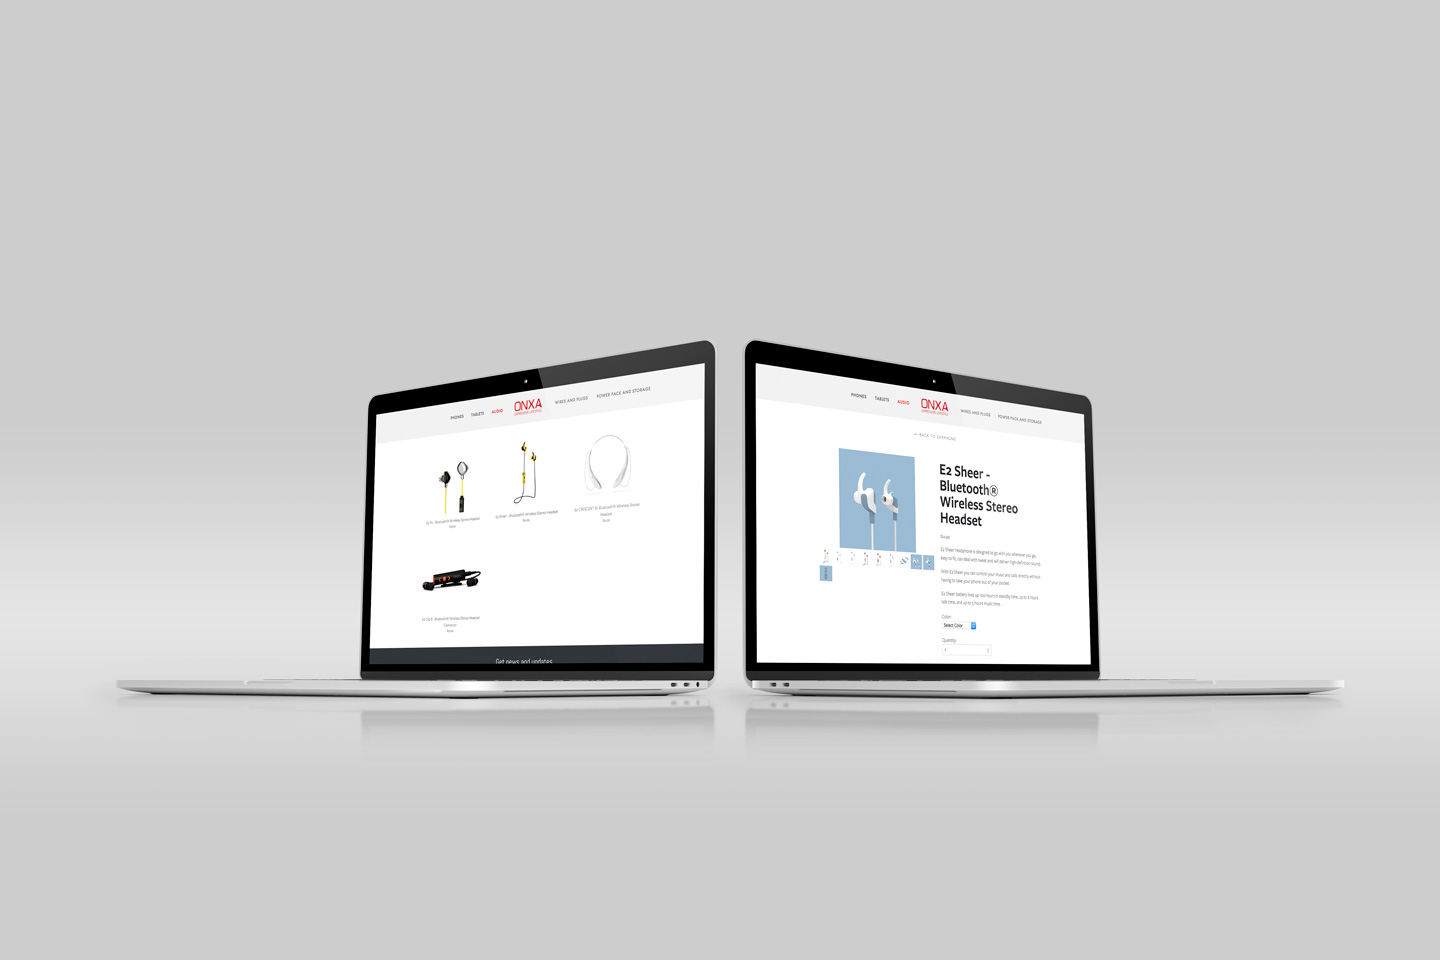 responsive shopping and e-commerce product detail website design on laptop